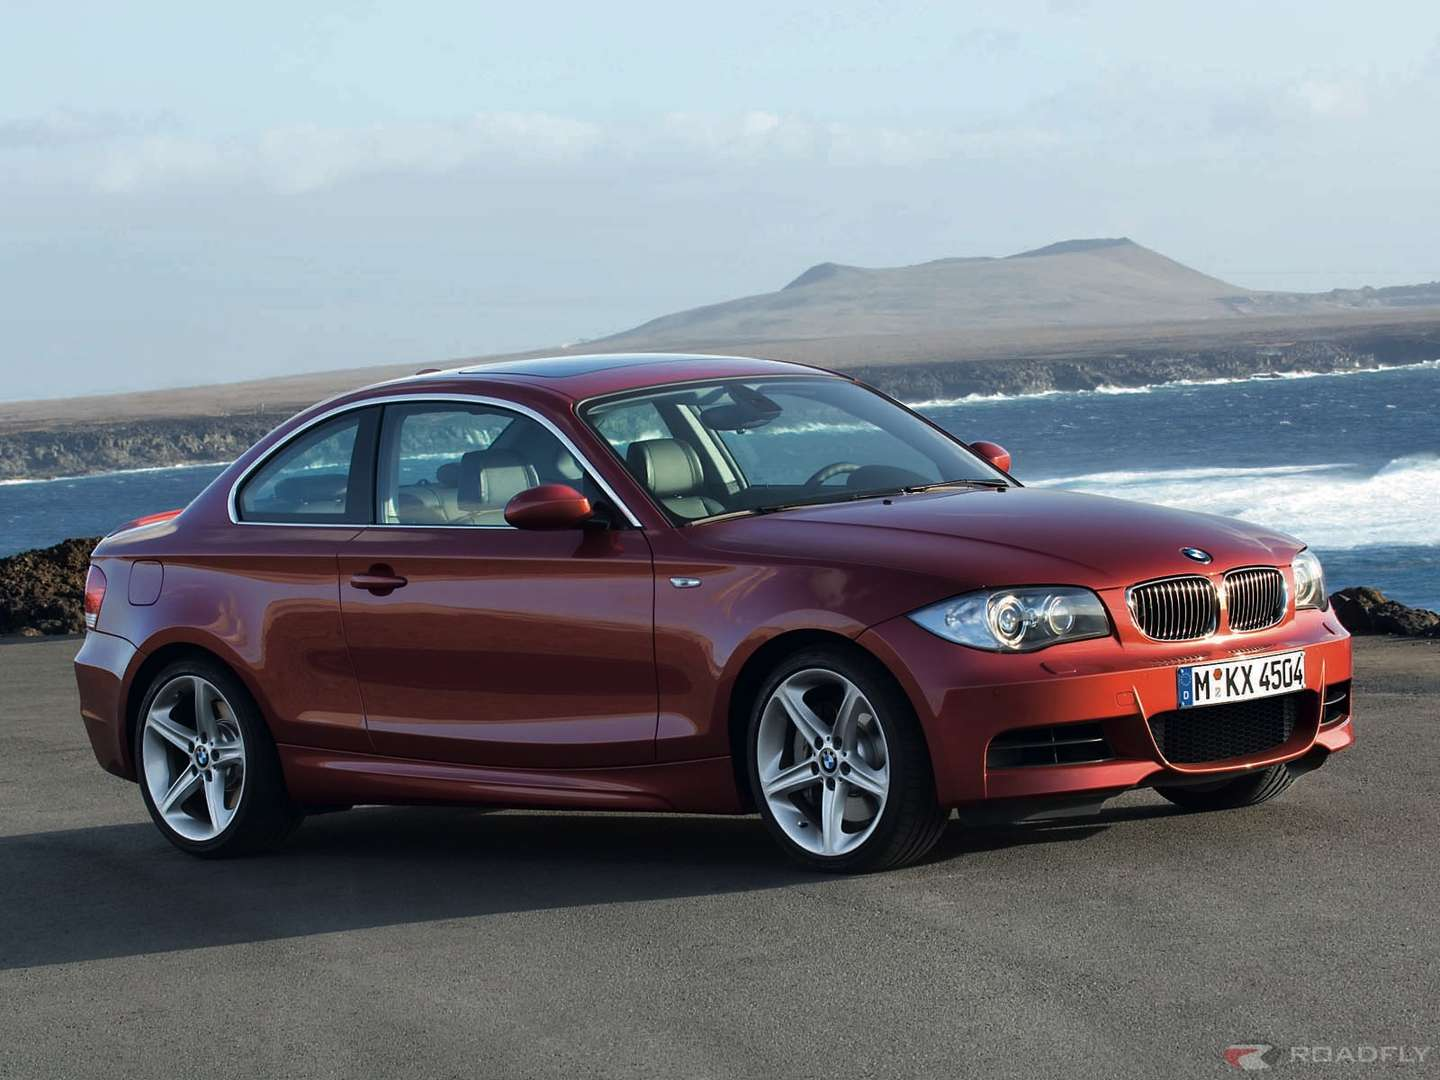 BMW 1 Series Coupe #8536610